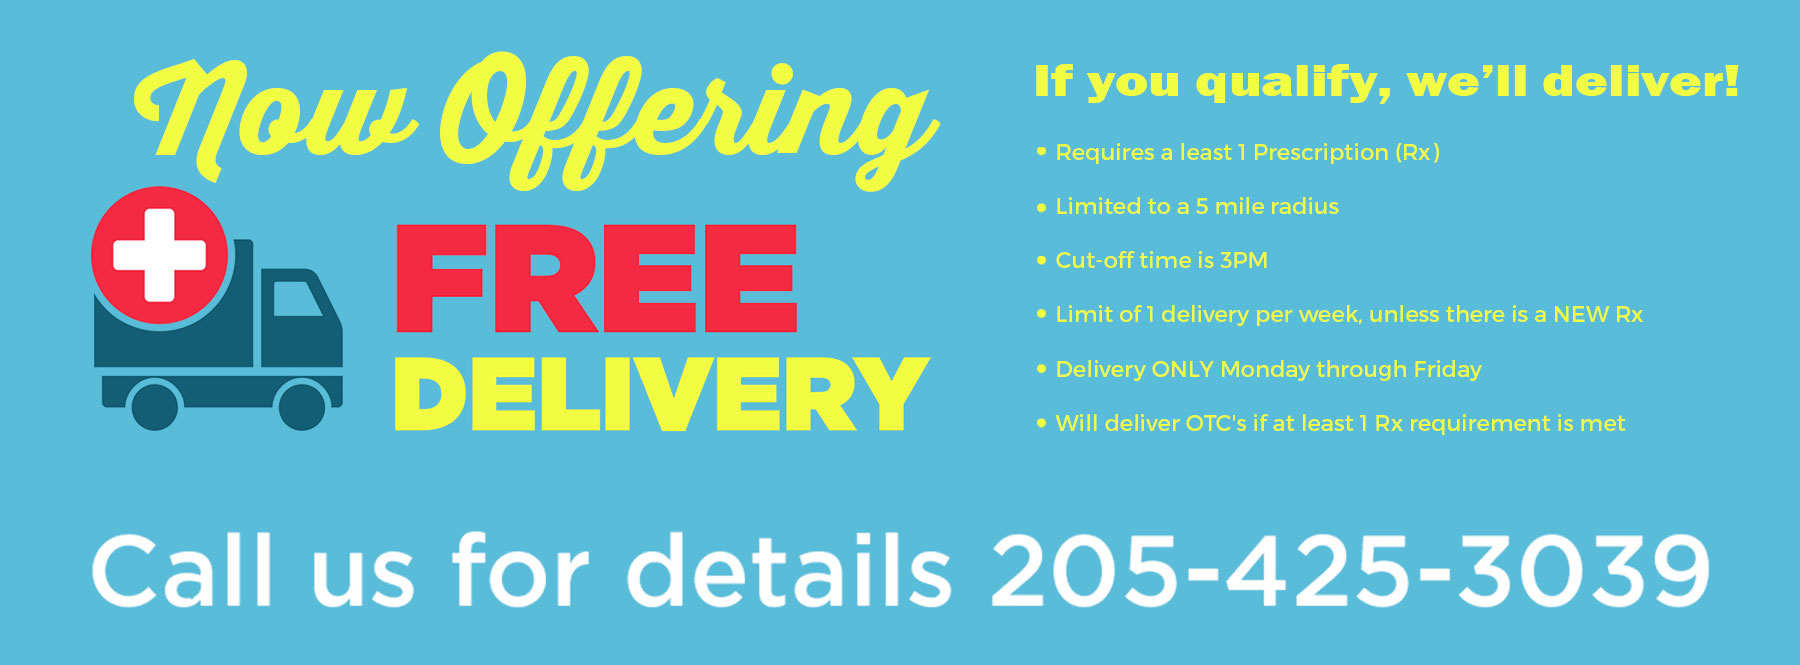 hinkle-pharmacy-free-delivery